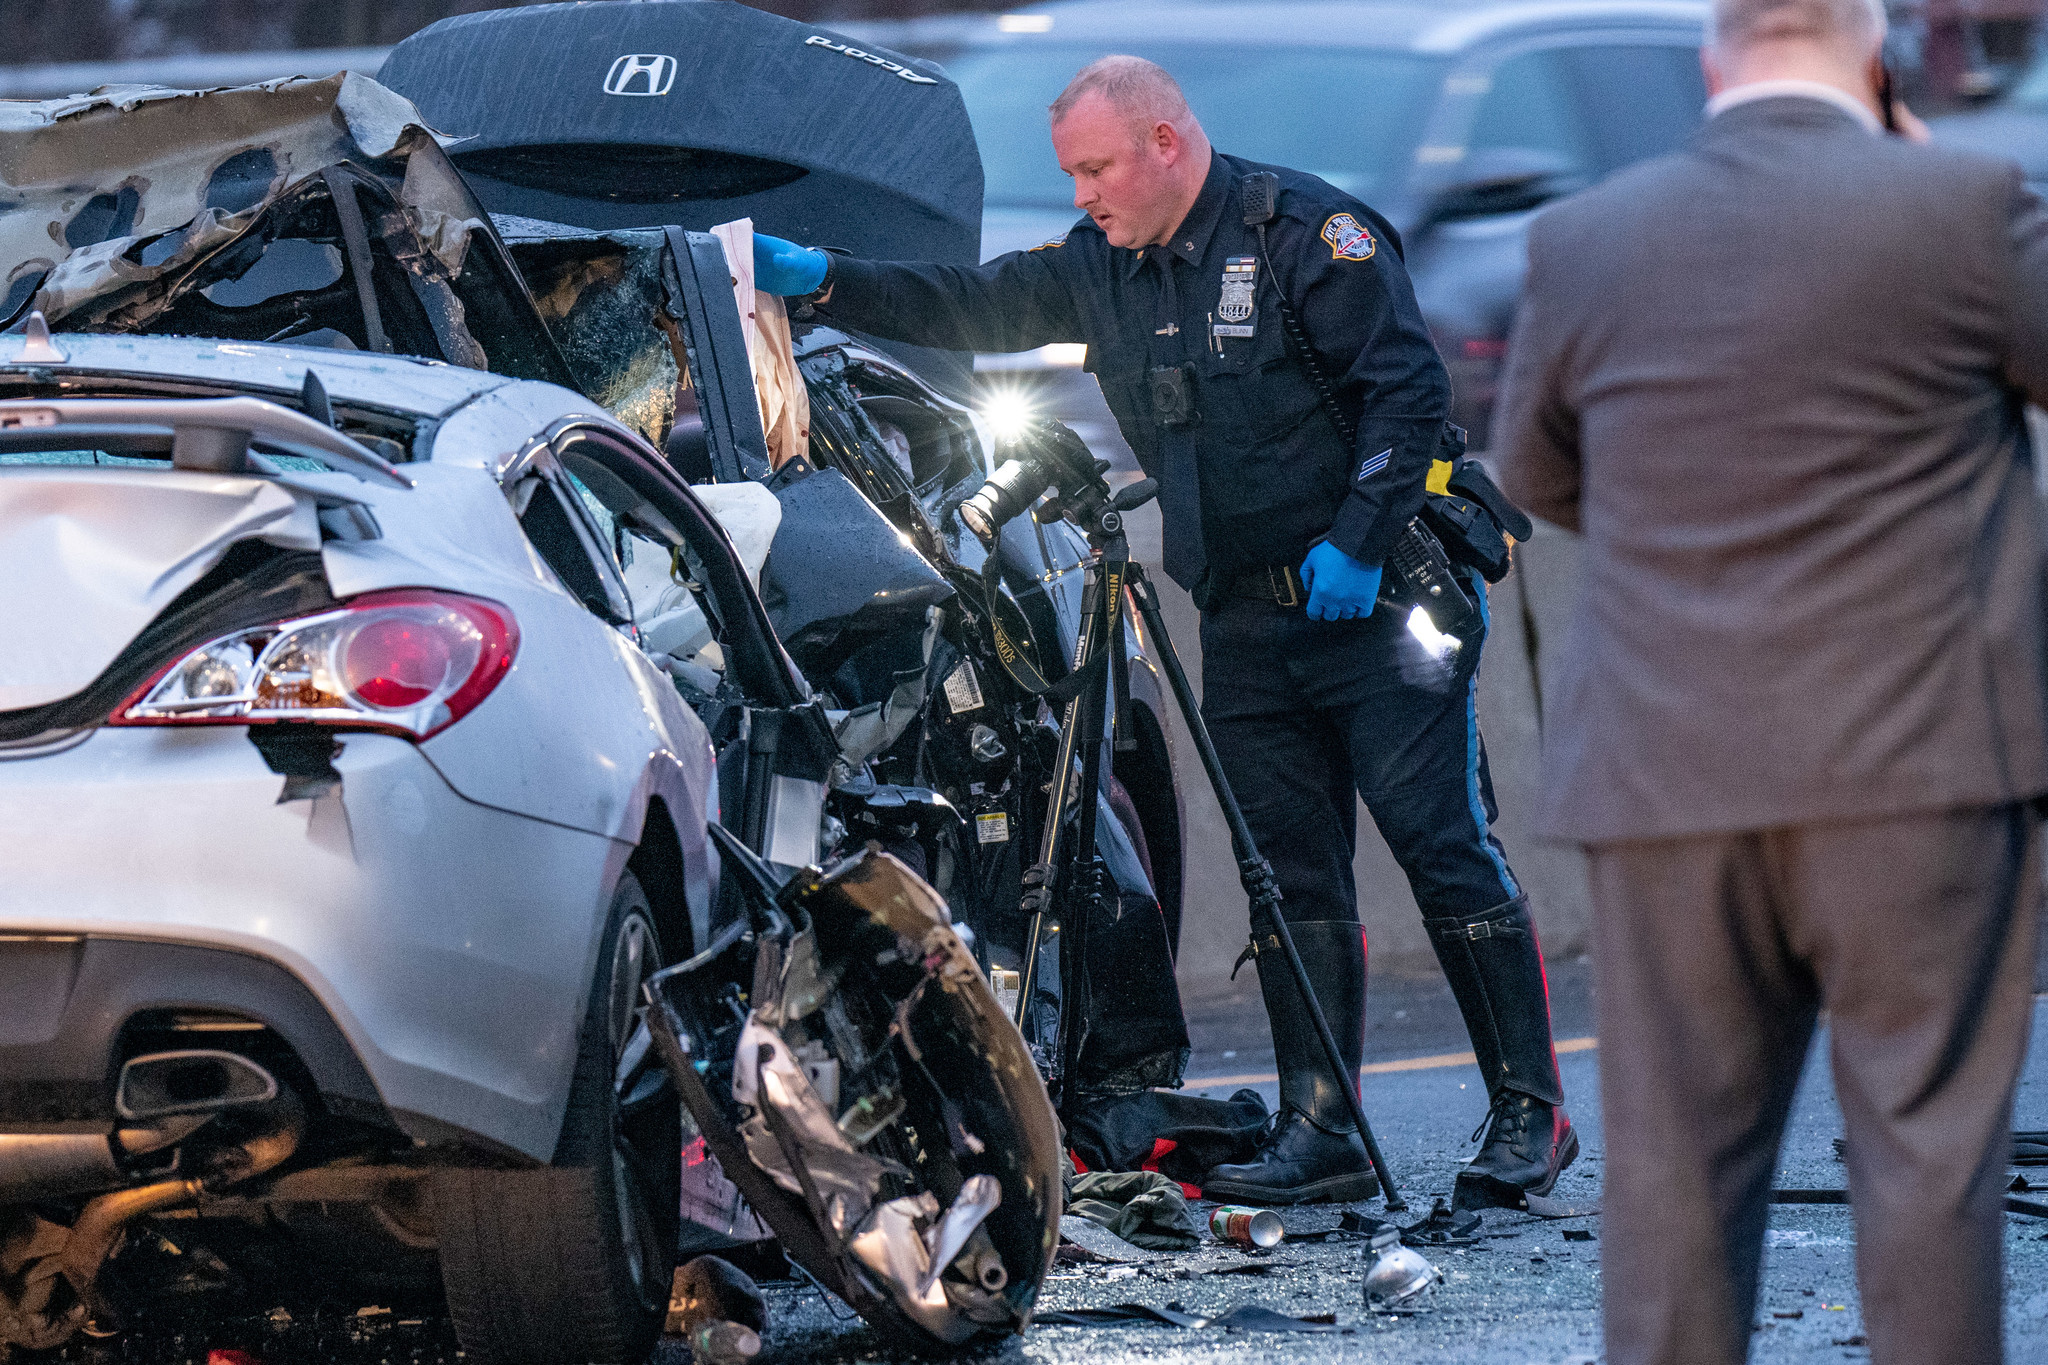 Families mourn, search for answers after 3 killed in wrong-way car crash in Queens